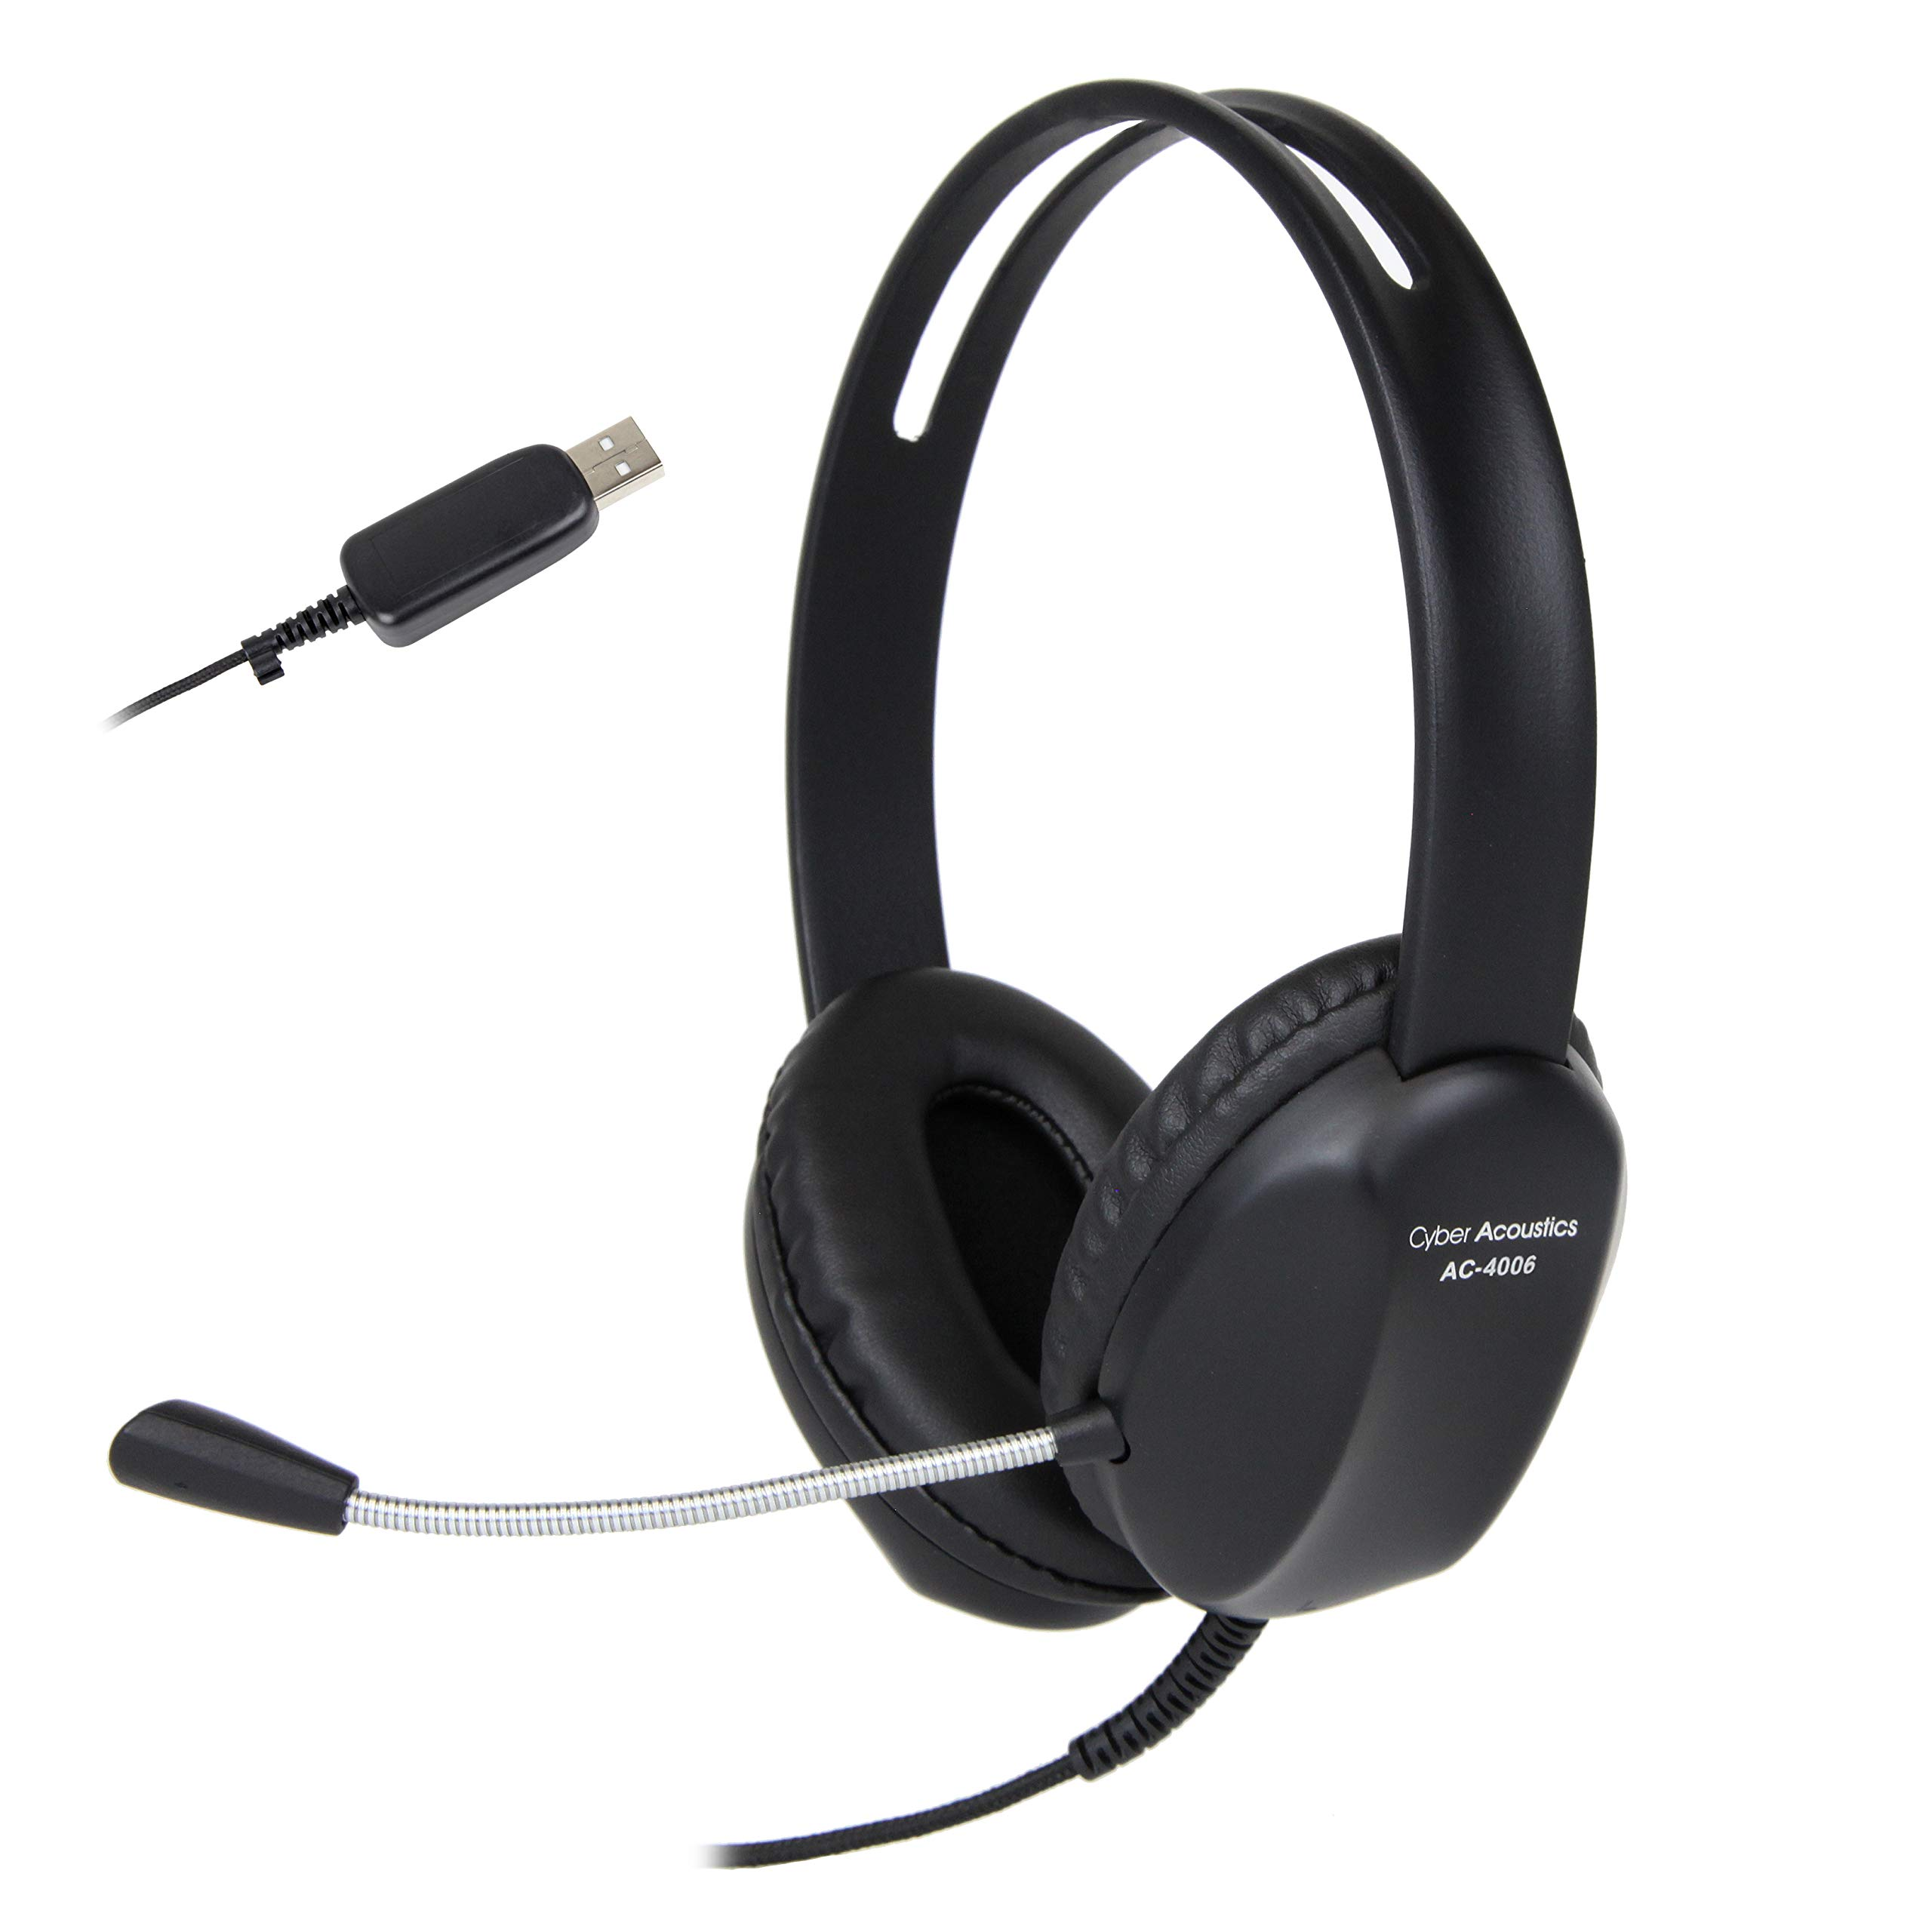 (80 Pack) Cyber Acoustics USB Stereo Headset with Headphones and Noise Cancelling Microphone for PCs and Other USB Devices in The Office, Classroom or Home (AC-4006)